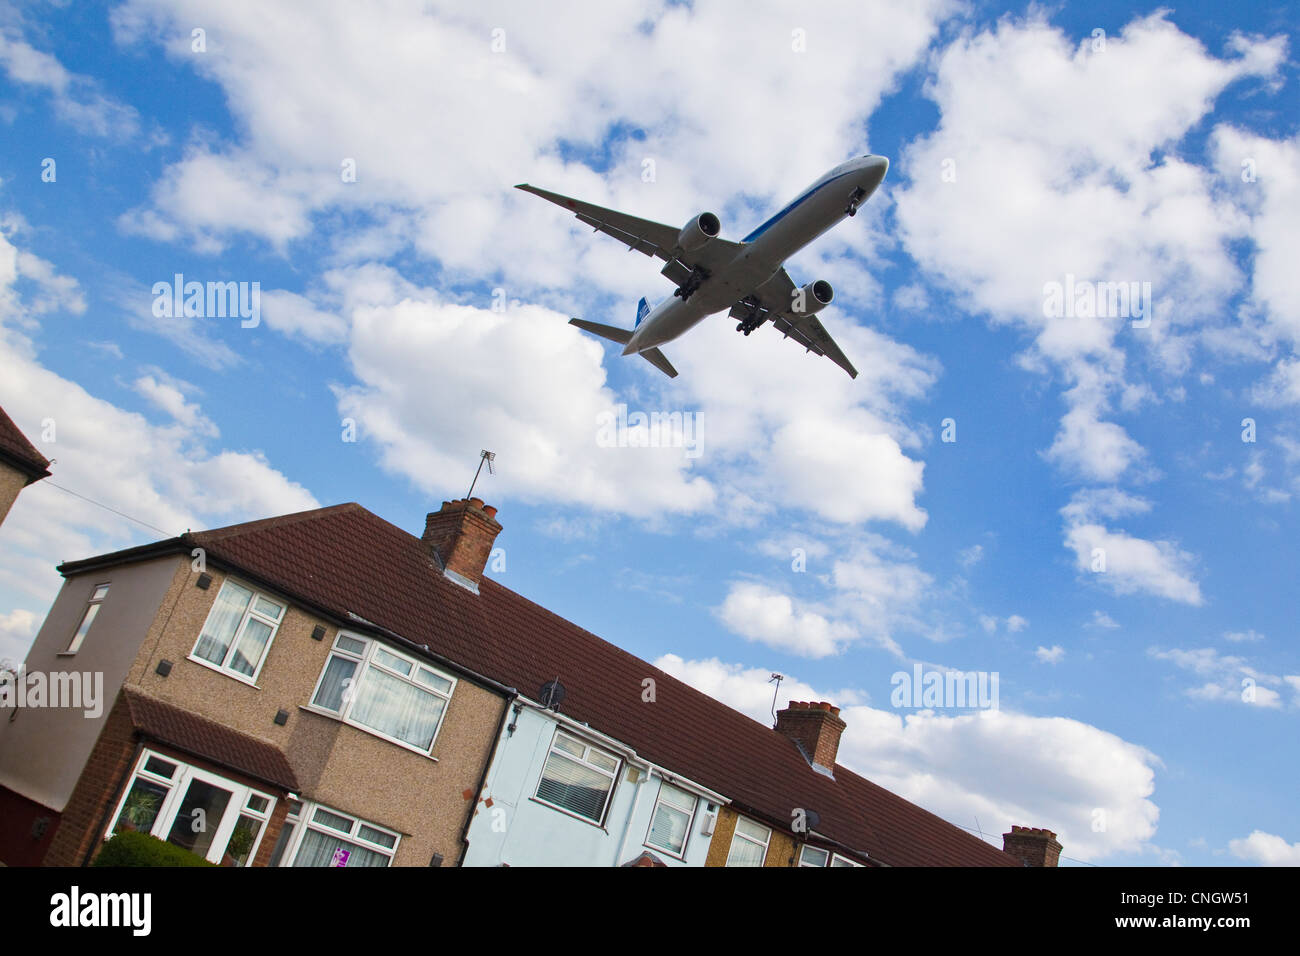 Aircraft landing close to rooftops of houses in Cranford, near Heathrow Airport, where a third runway is planned. - Stock Image